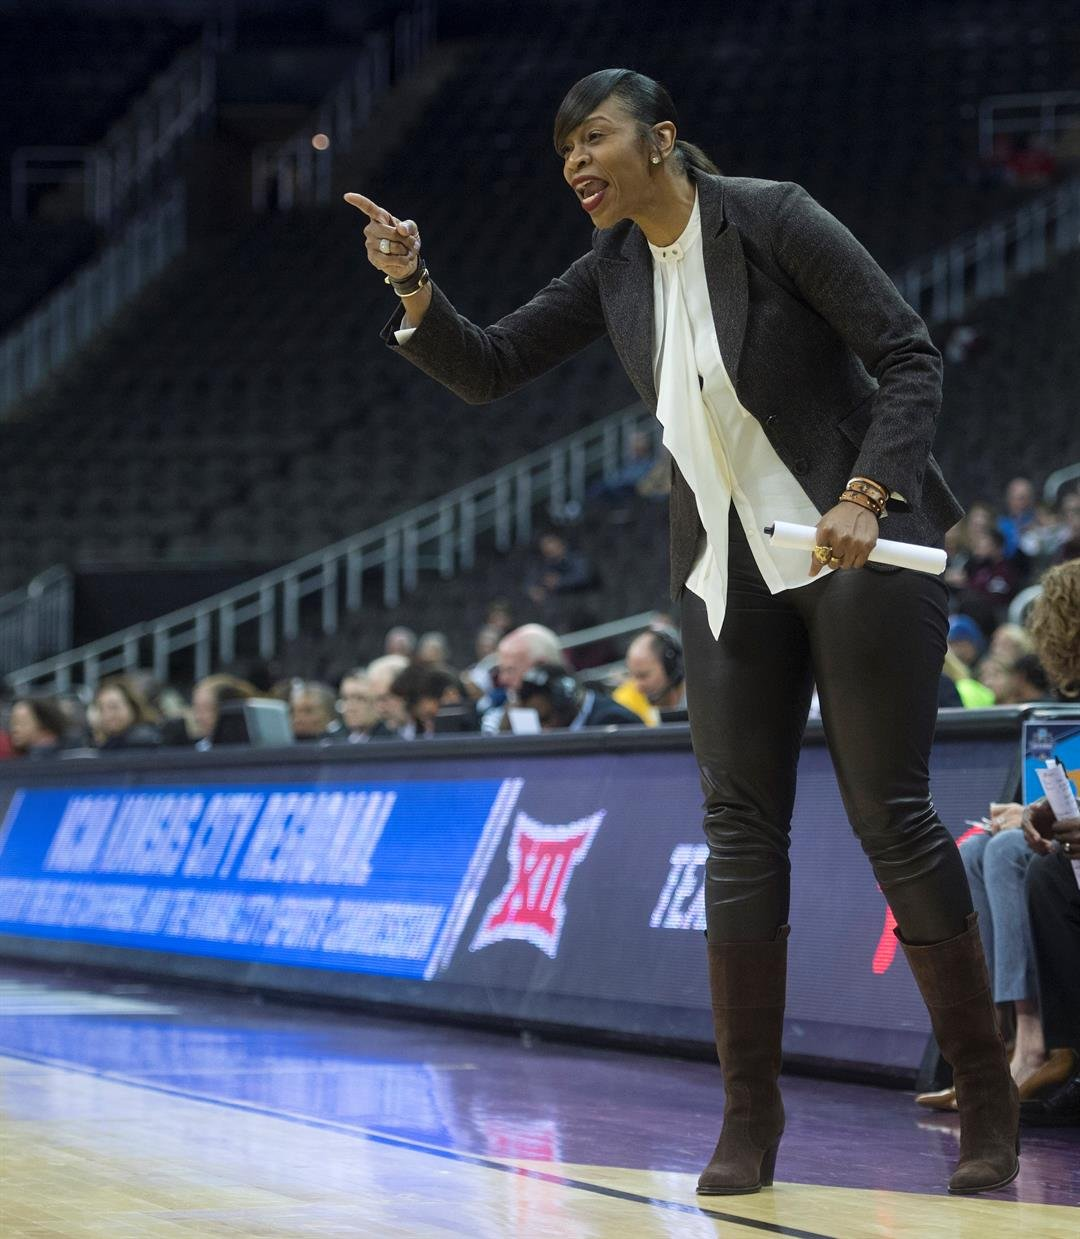 Virginia names former WNBA star Tina Thompson as new head coach